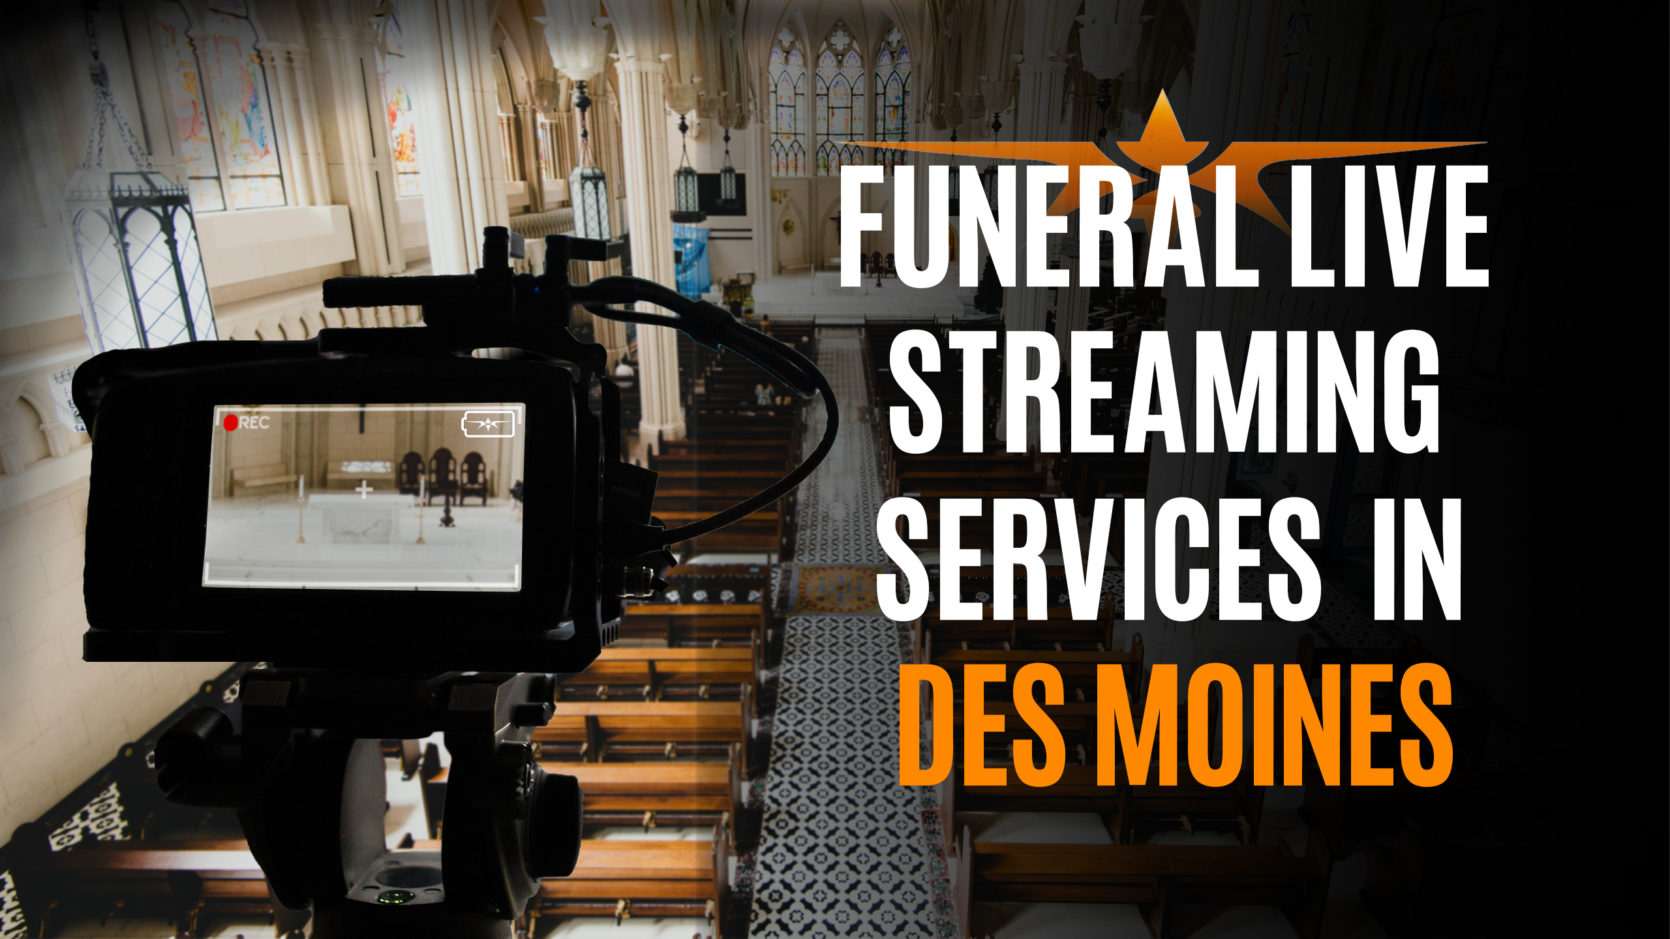 Funeral Live Streaming Services in Des Moines